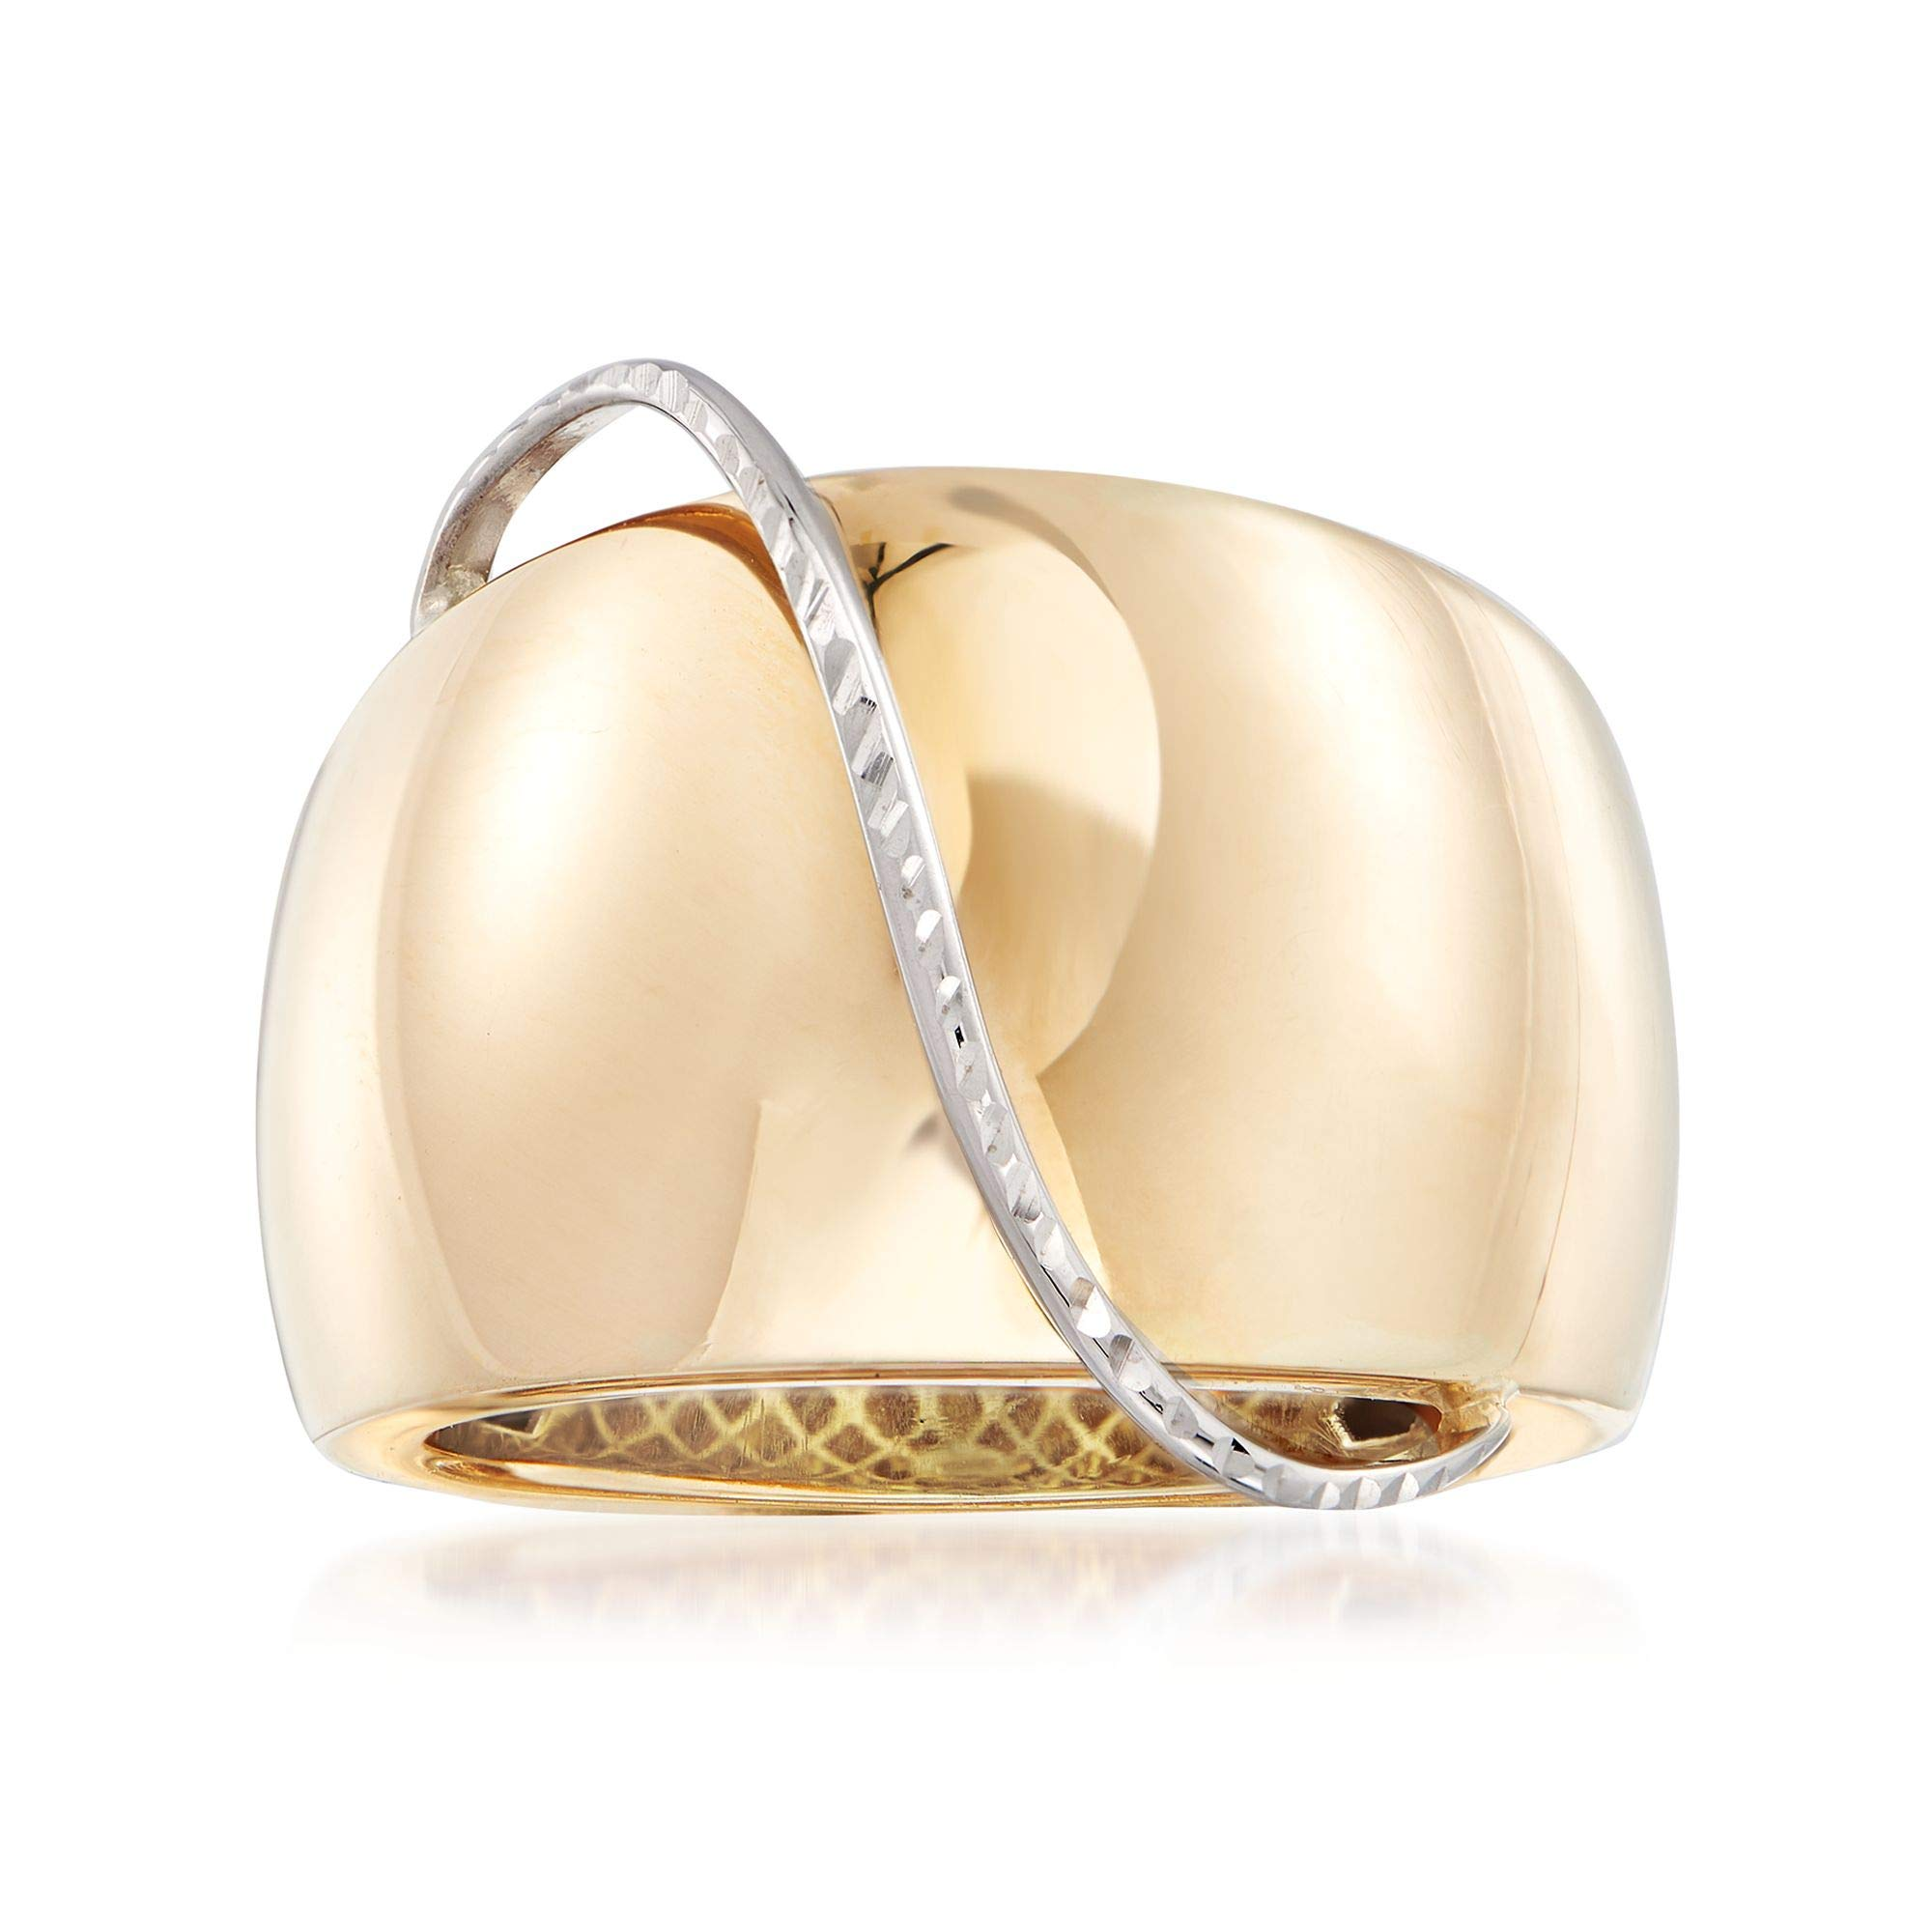 Ross-Simons Italian 14kt Yellow Gold Dome Ring With 14kt White Gold